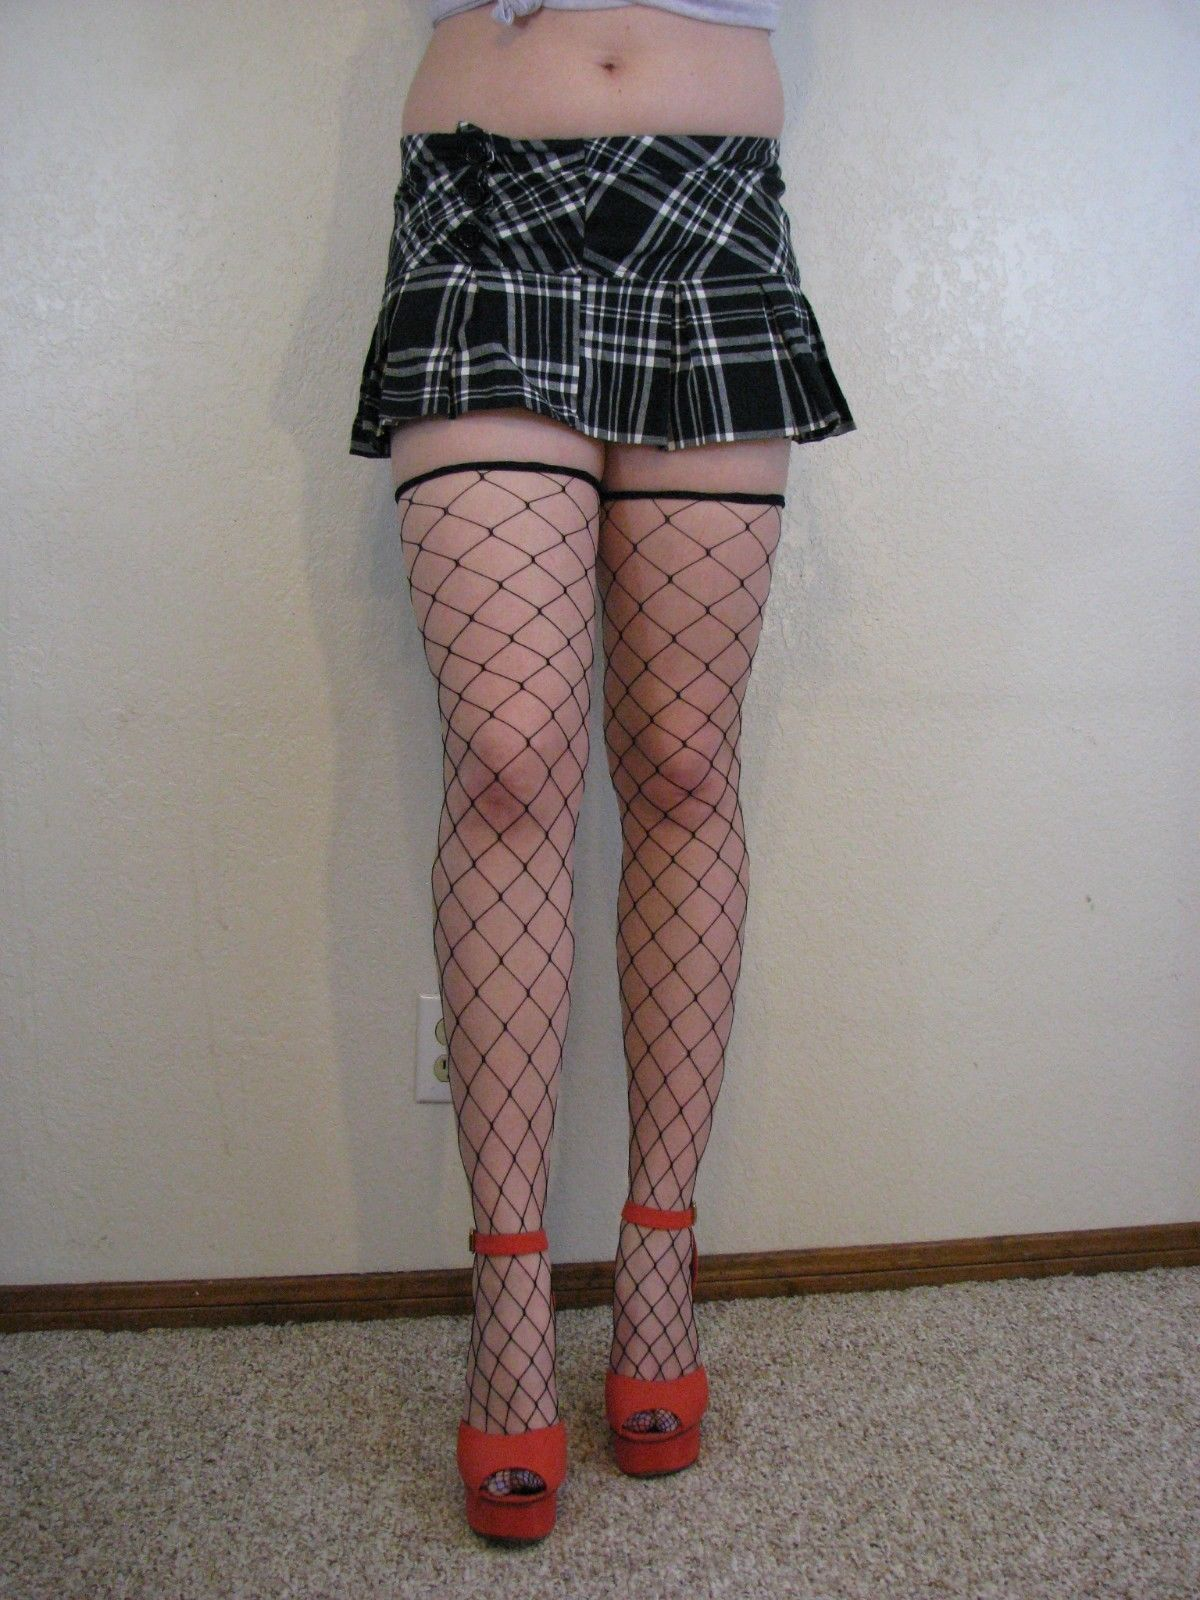 0aeebe8671 Details about Lip Service Black fence net thigh highs #94 in 2019 ...